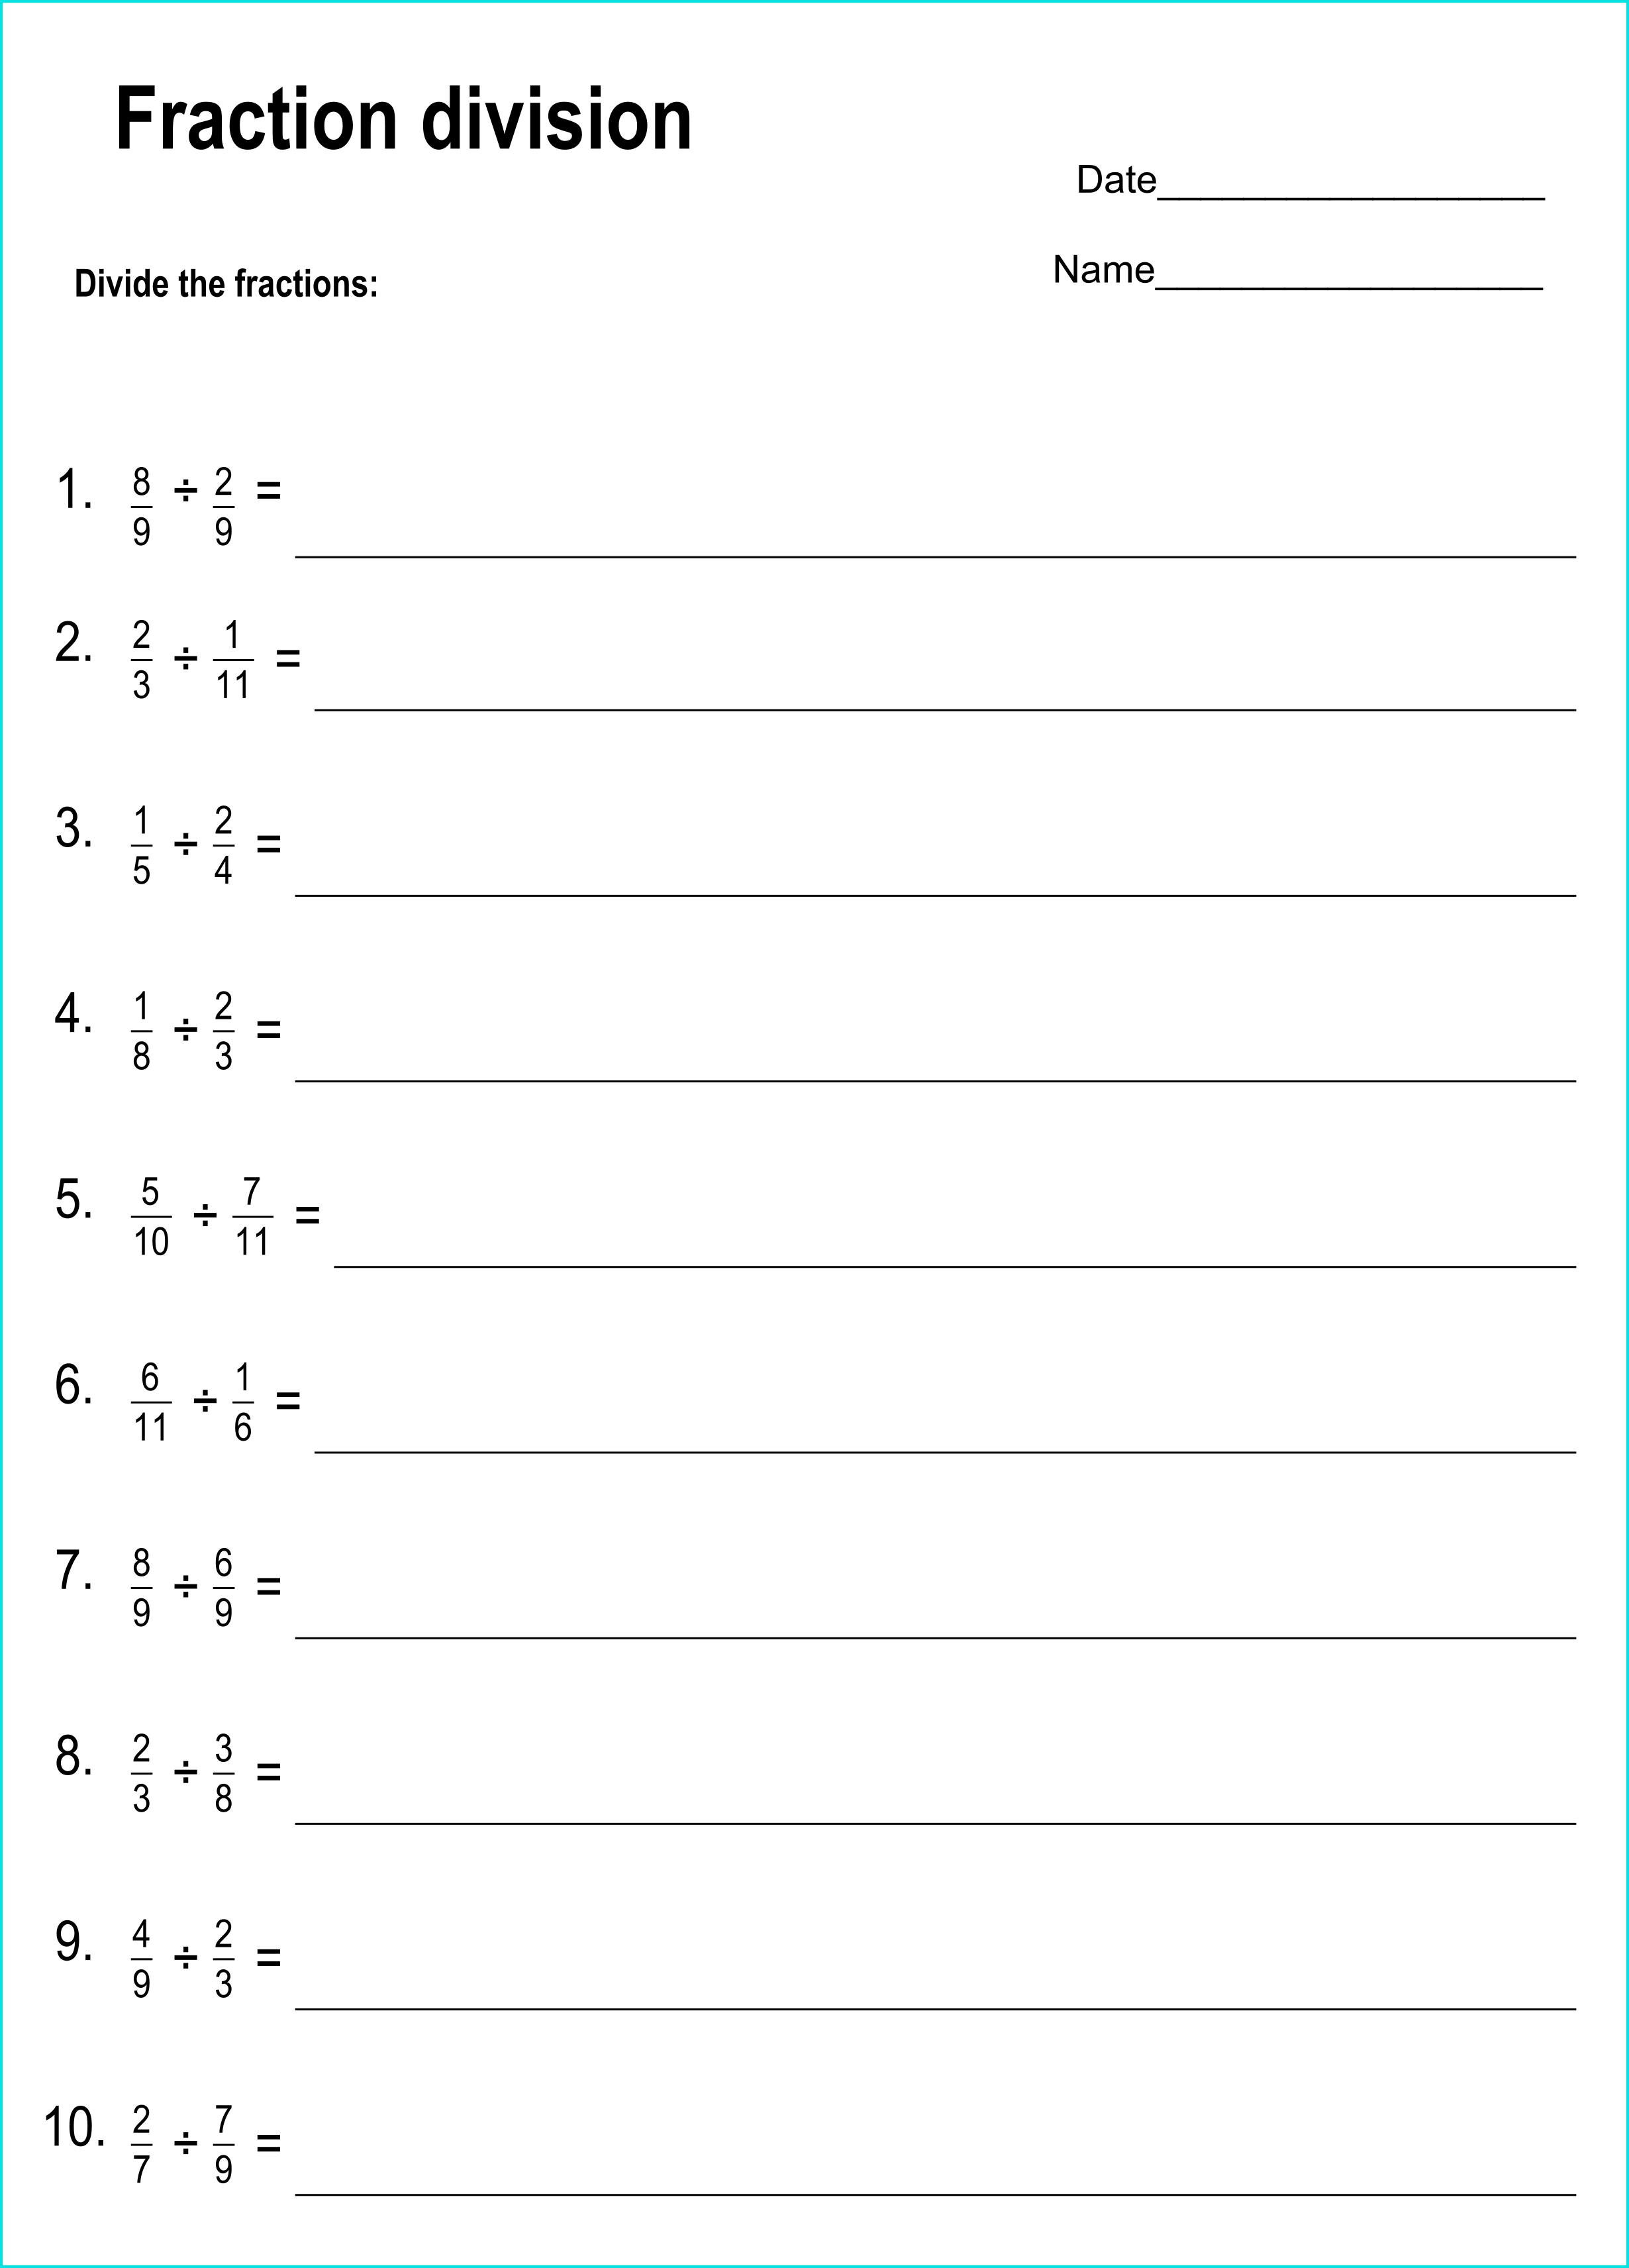 Printable dividing fractions worksheets with answers (PDF) -  Printerfriend.ly [ 3424 x 2460 Pixel ]